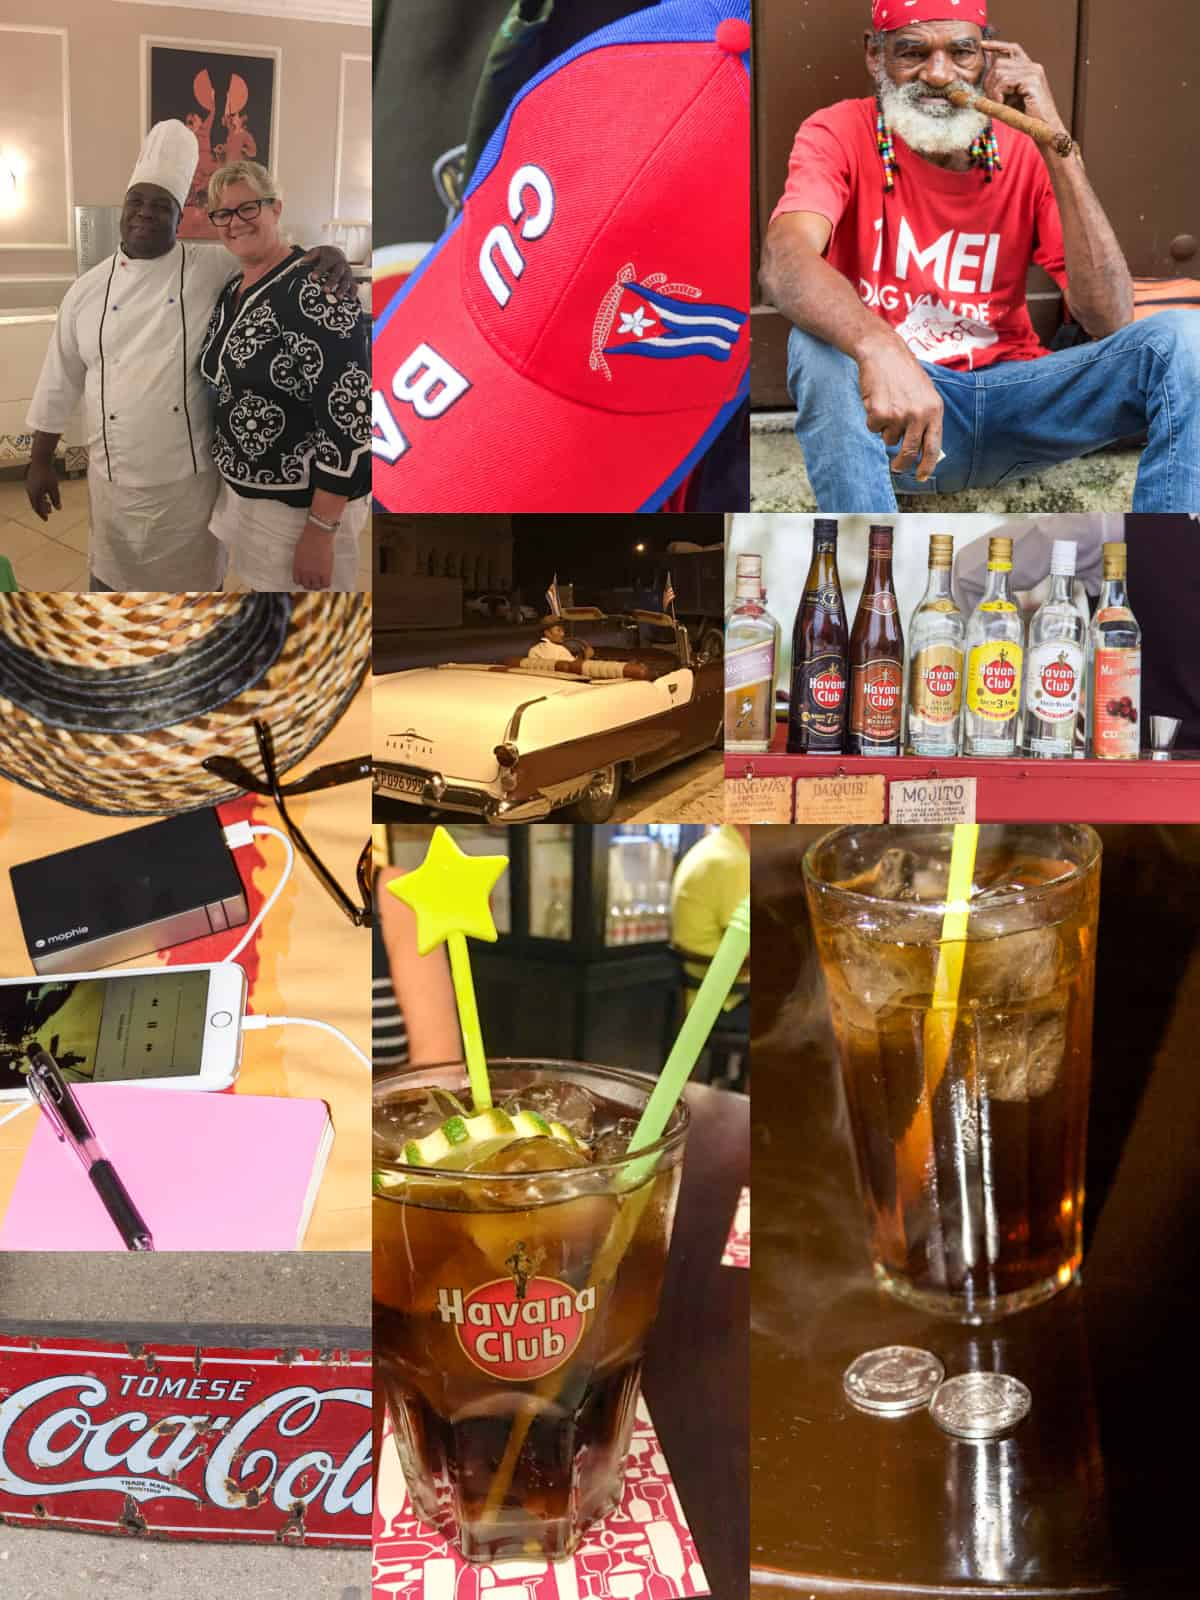 A travel collage of photos from Cuba picturing people, cocktails, and cars in Cuba.